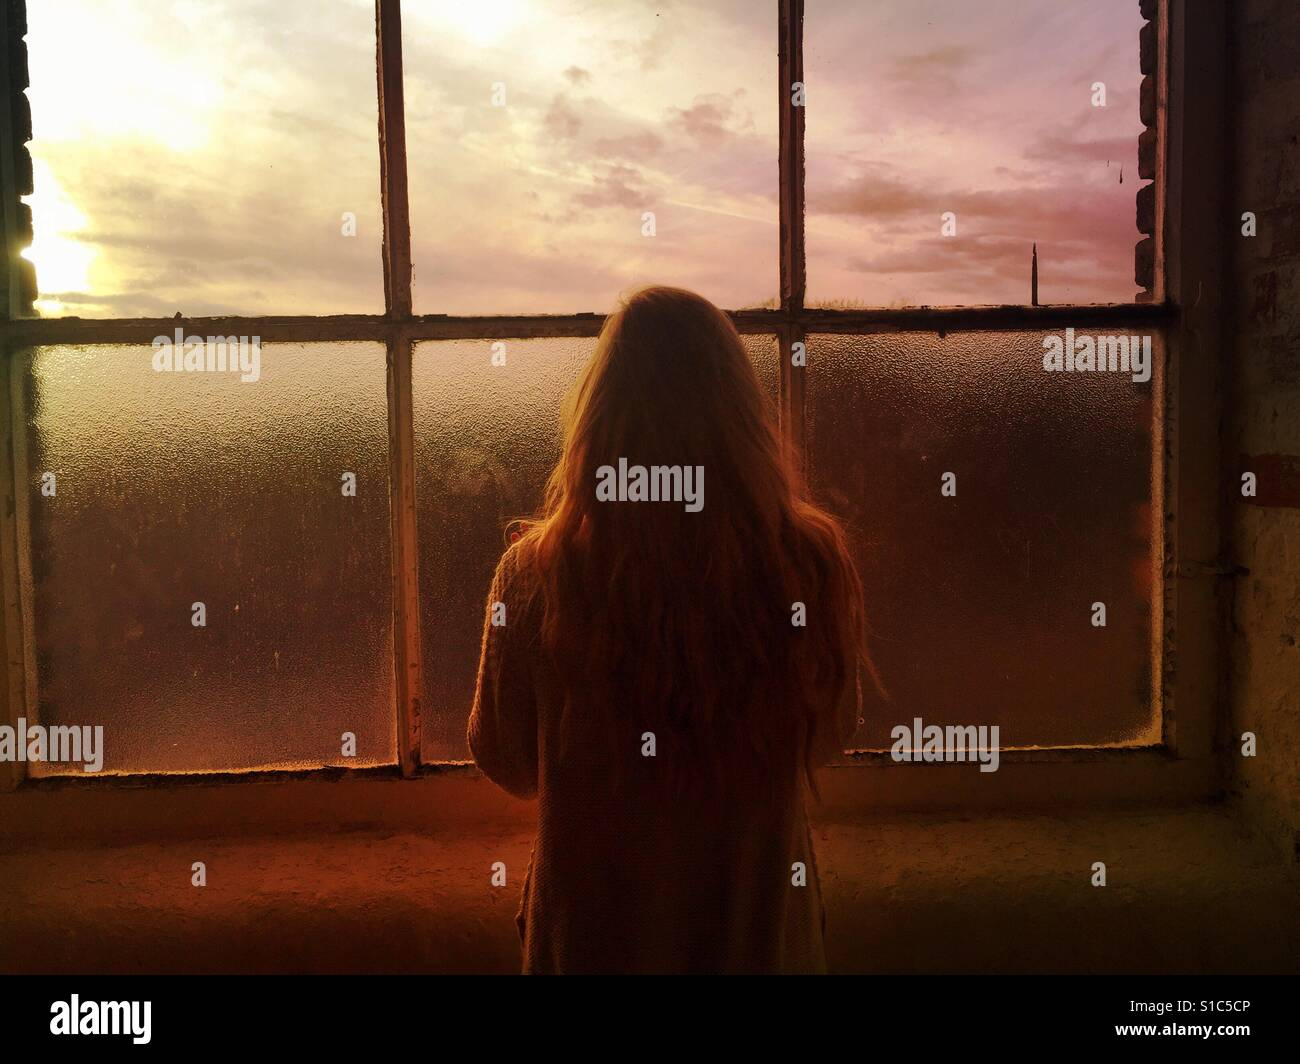 Rear view of a lonely woman looking out of the window at sunset - Stock Image